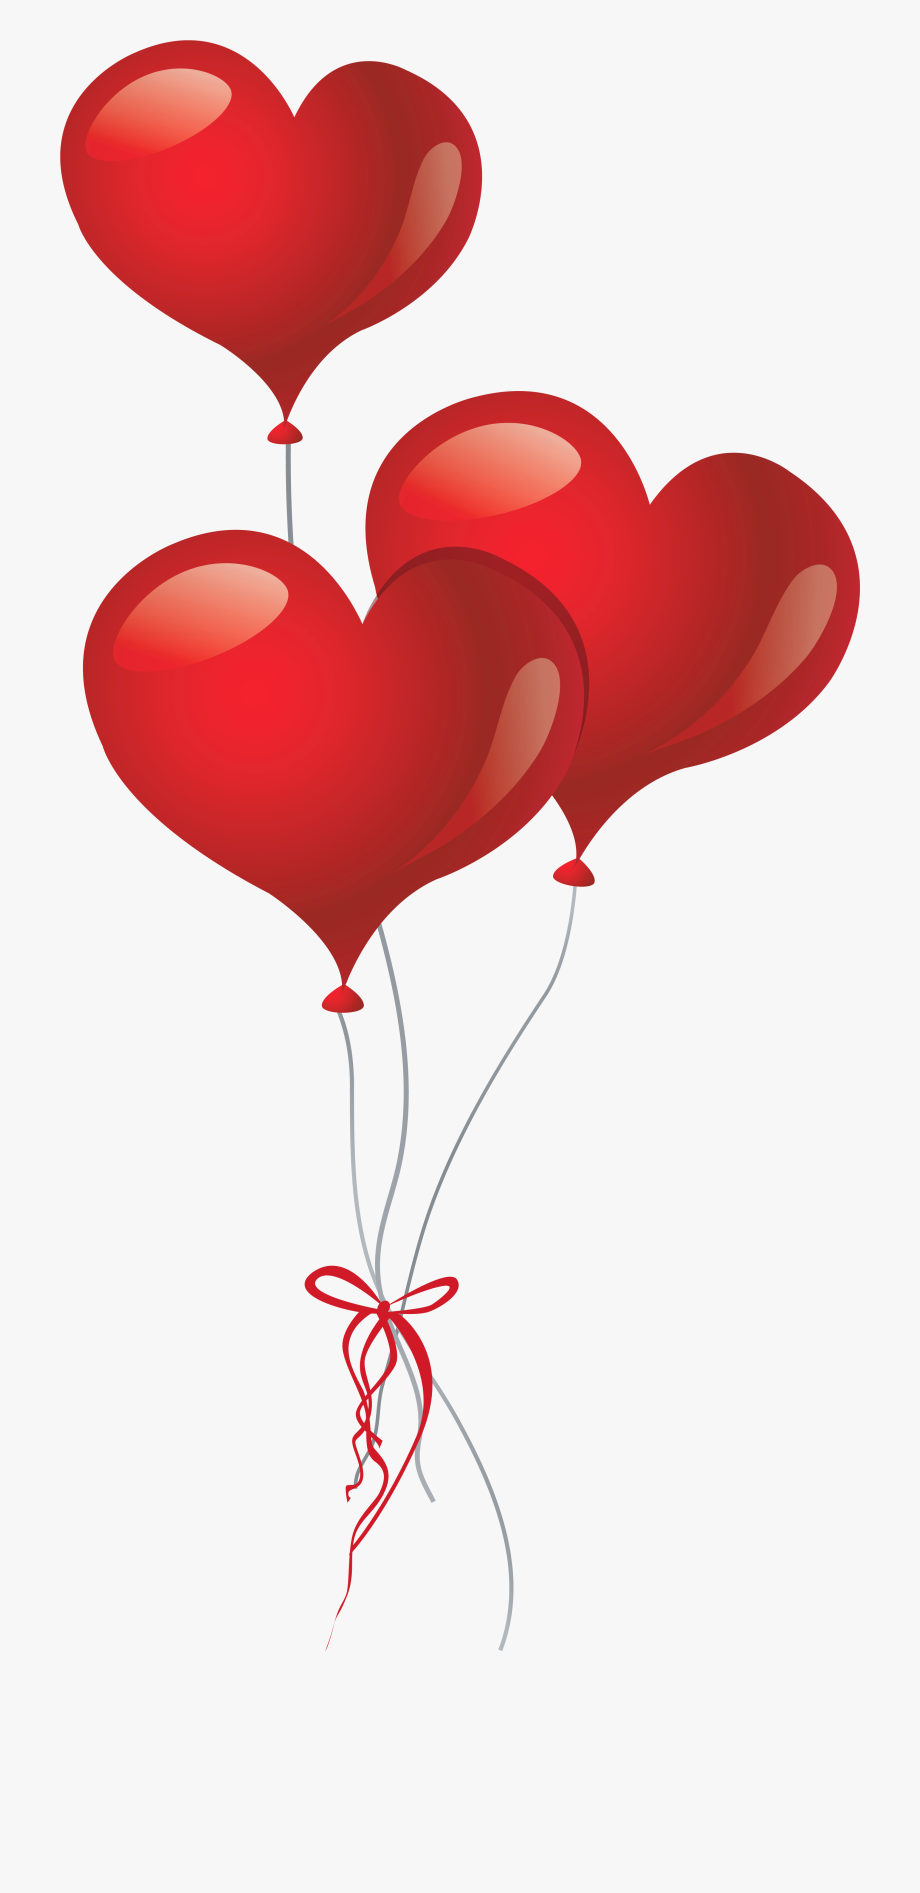 Balloon clipart valentines. Heart day balloons png